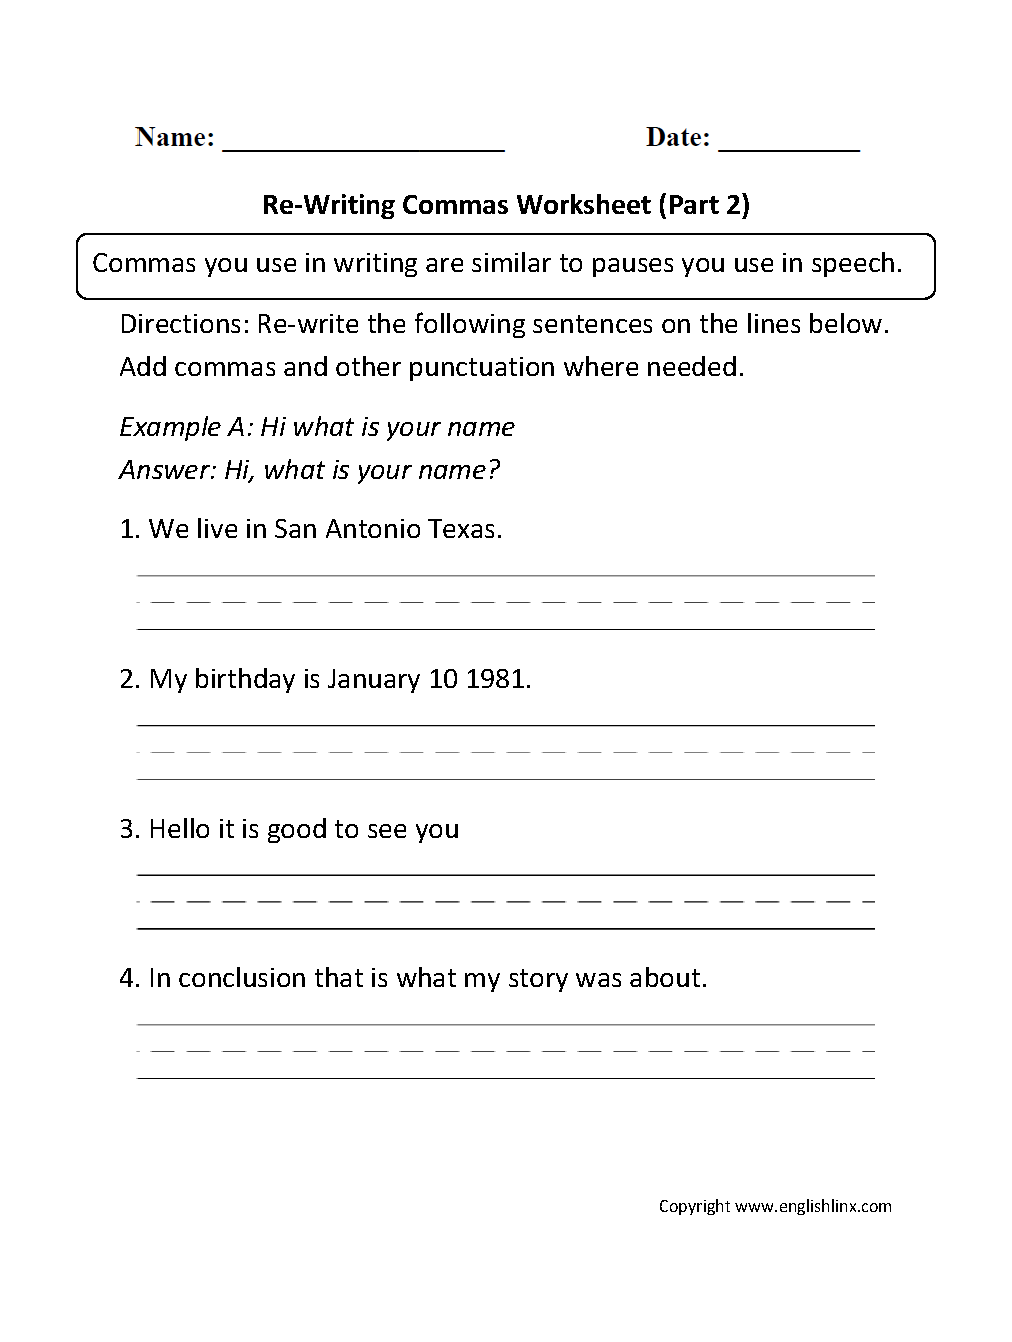 worksheet Comma Splice Worksheet englishlinx com commas worksheets part 2